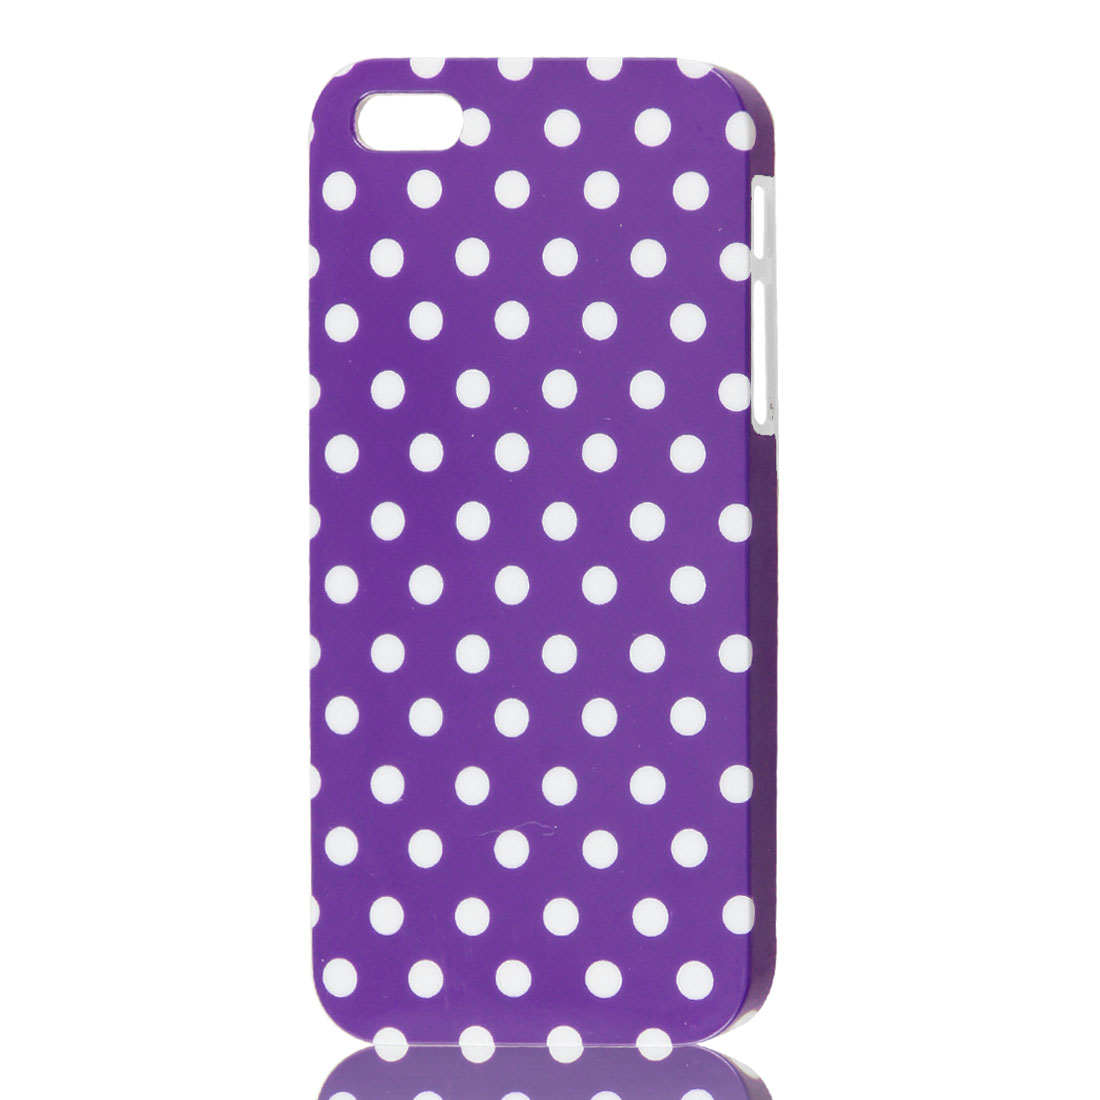 Dots Design Purple IMD Hard Back Cover Case Skin Protector for Apple iPhone 5 5G